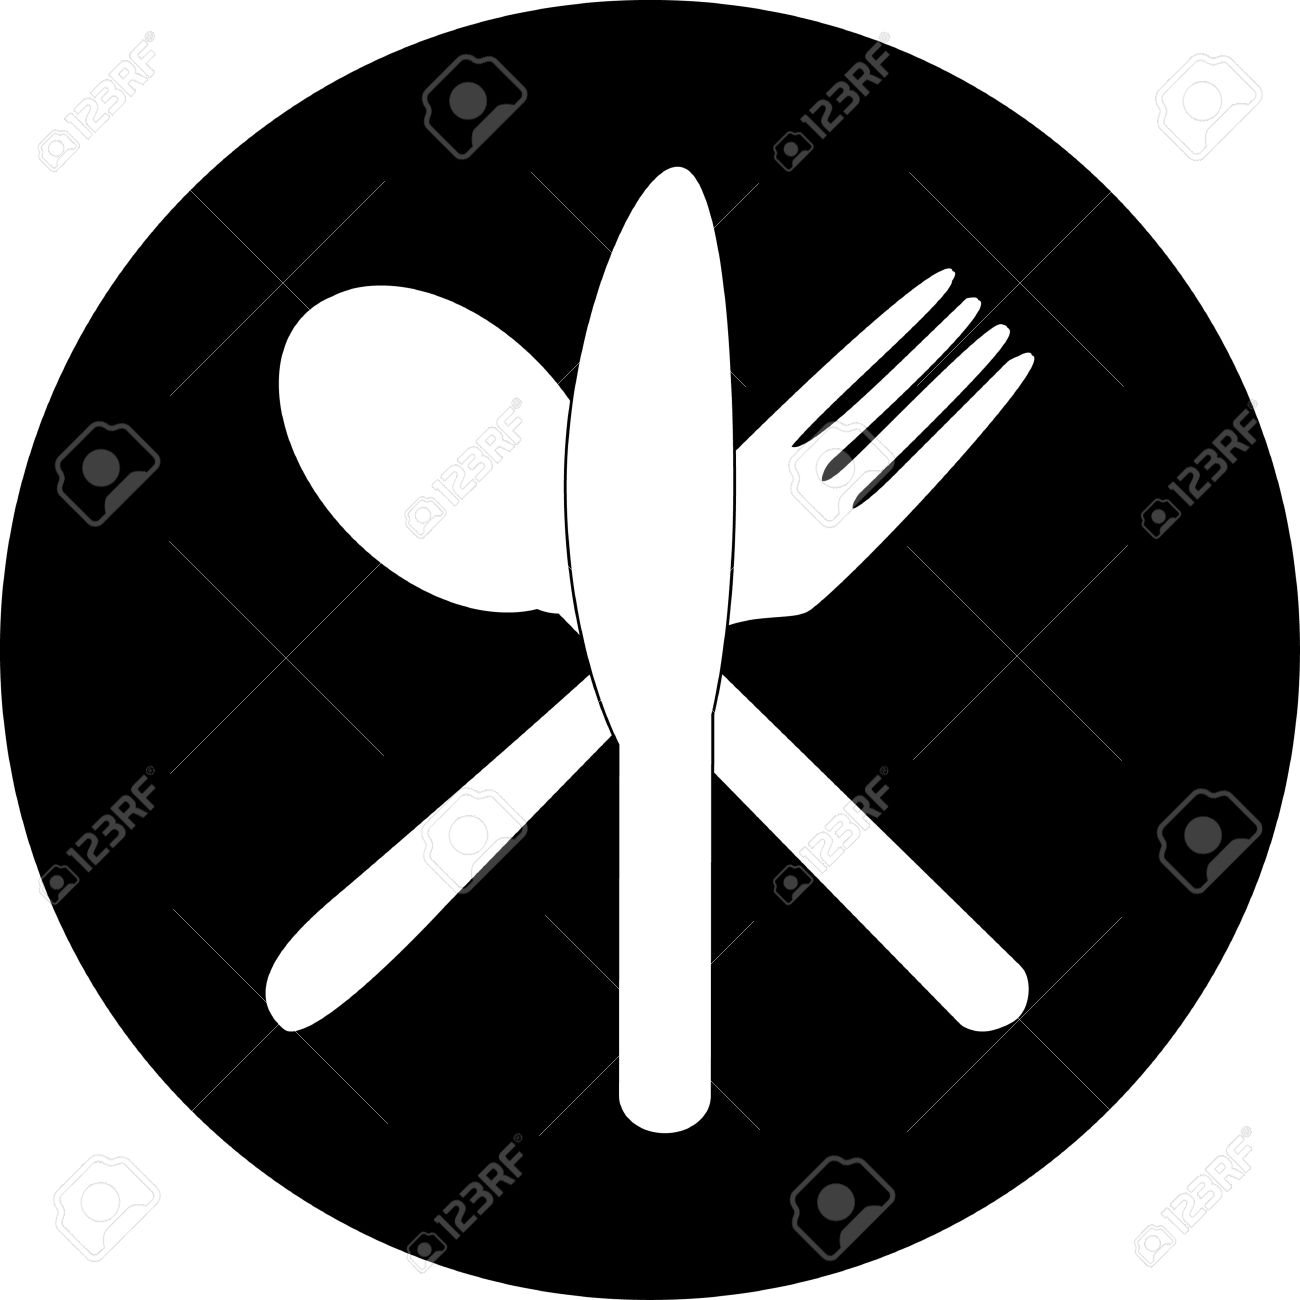 Cutlery Icons Fork, Knife And Spoon Silhouettes Royalty Free.